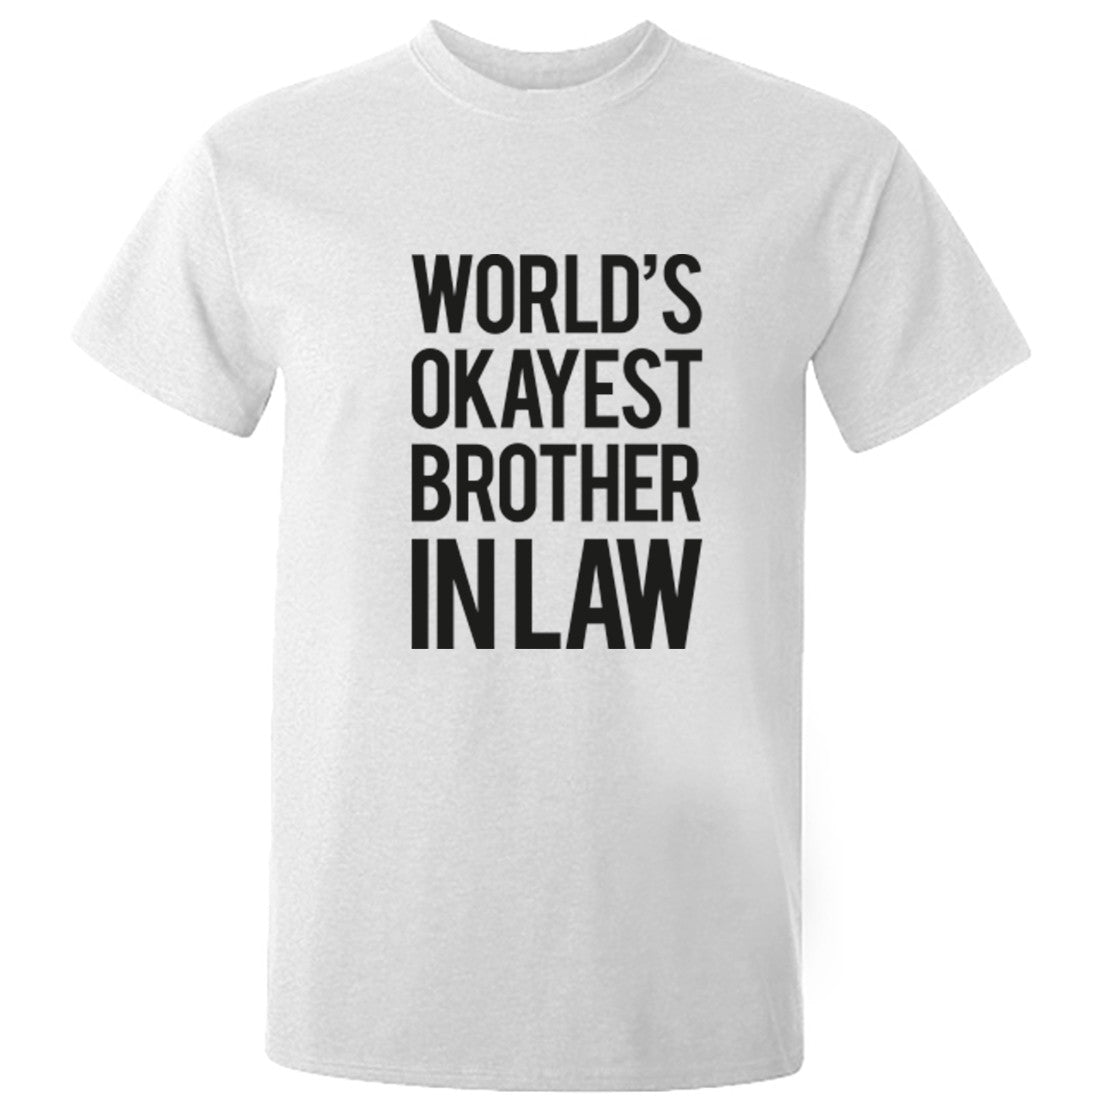 World's Okayest Brother In Law unisex t-shirt K0247